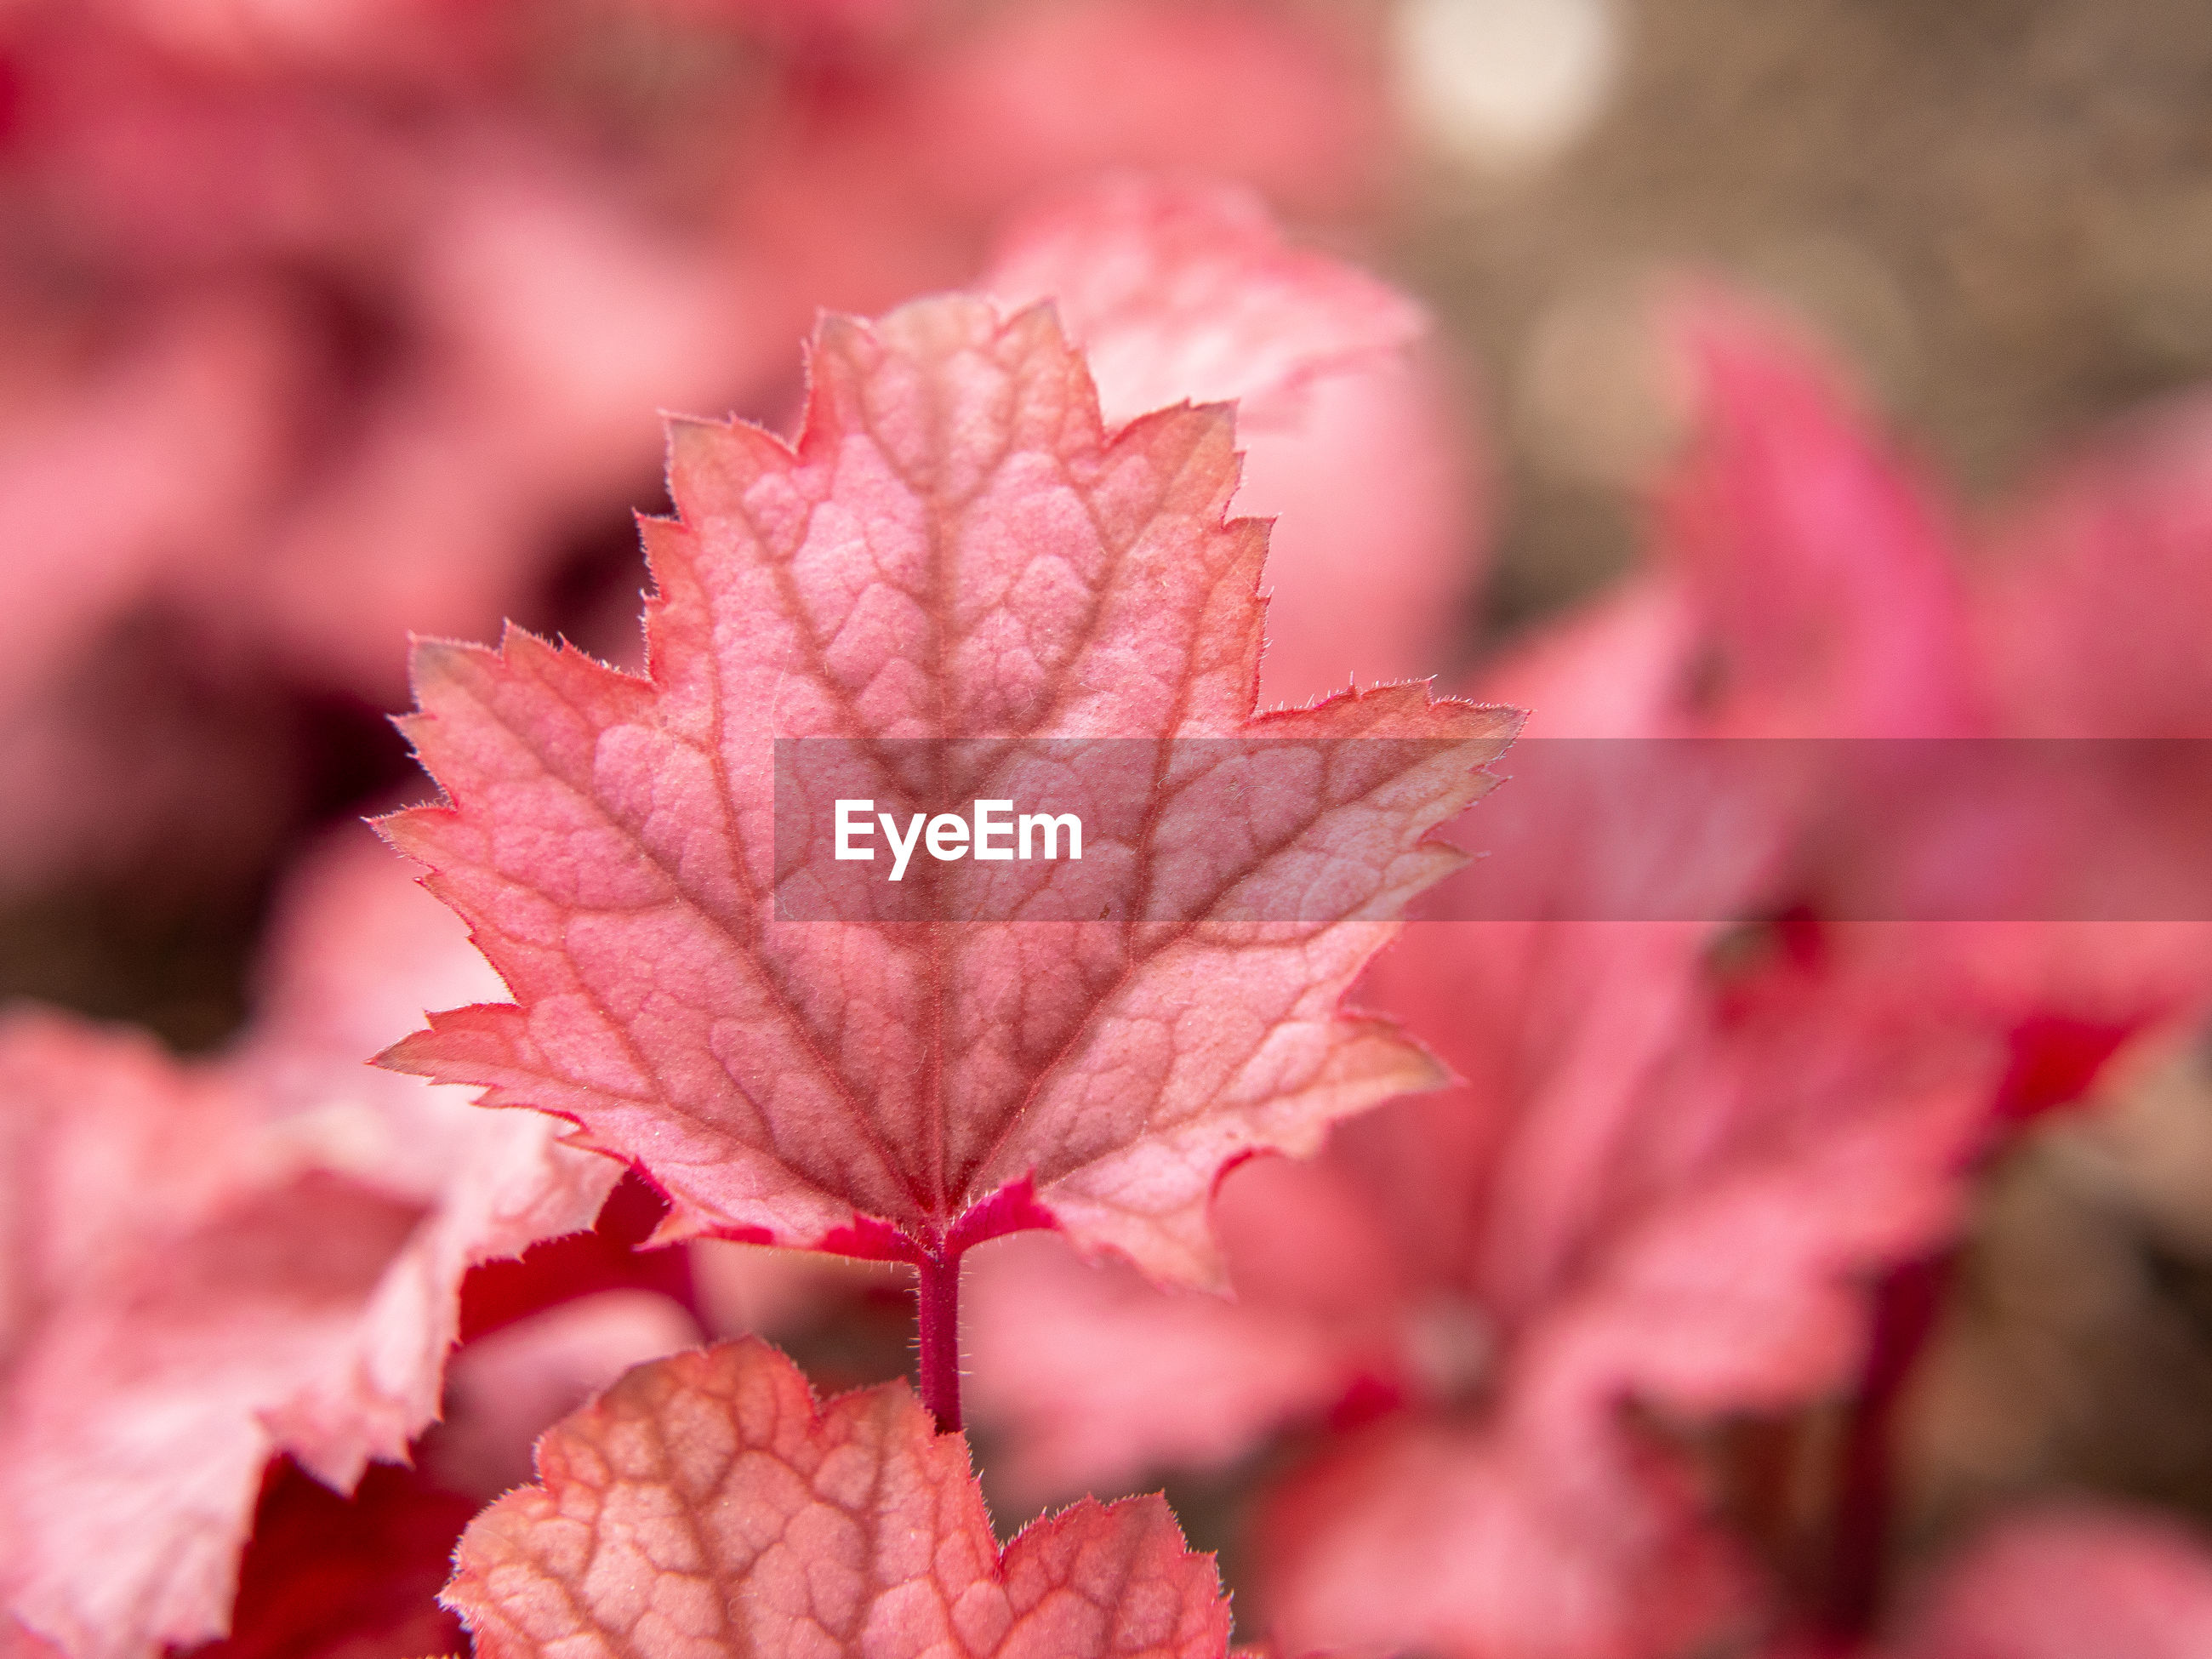 CLOSE-UP OF RED MAPLE LEAVES ON PINK FLOWER